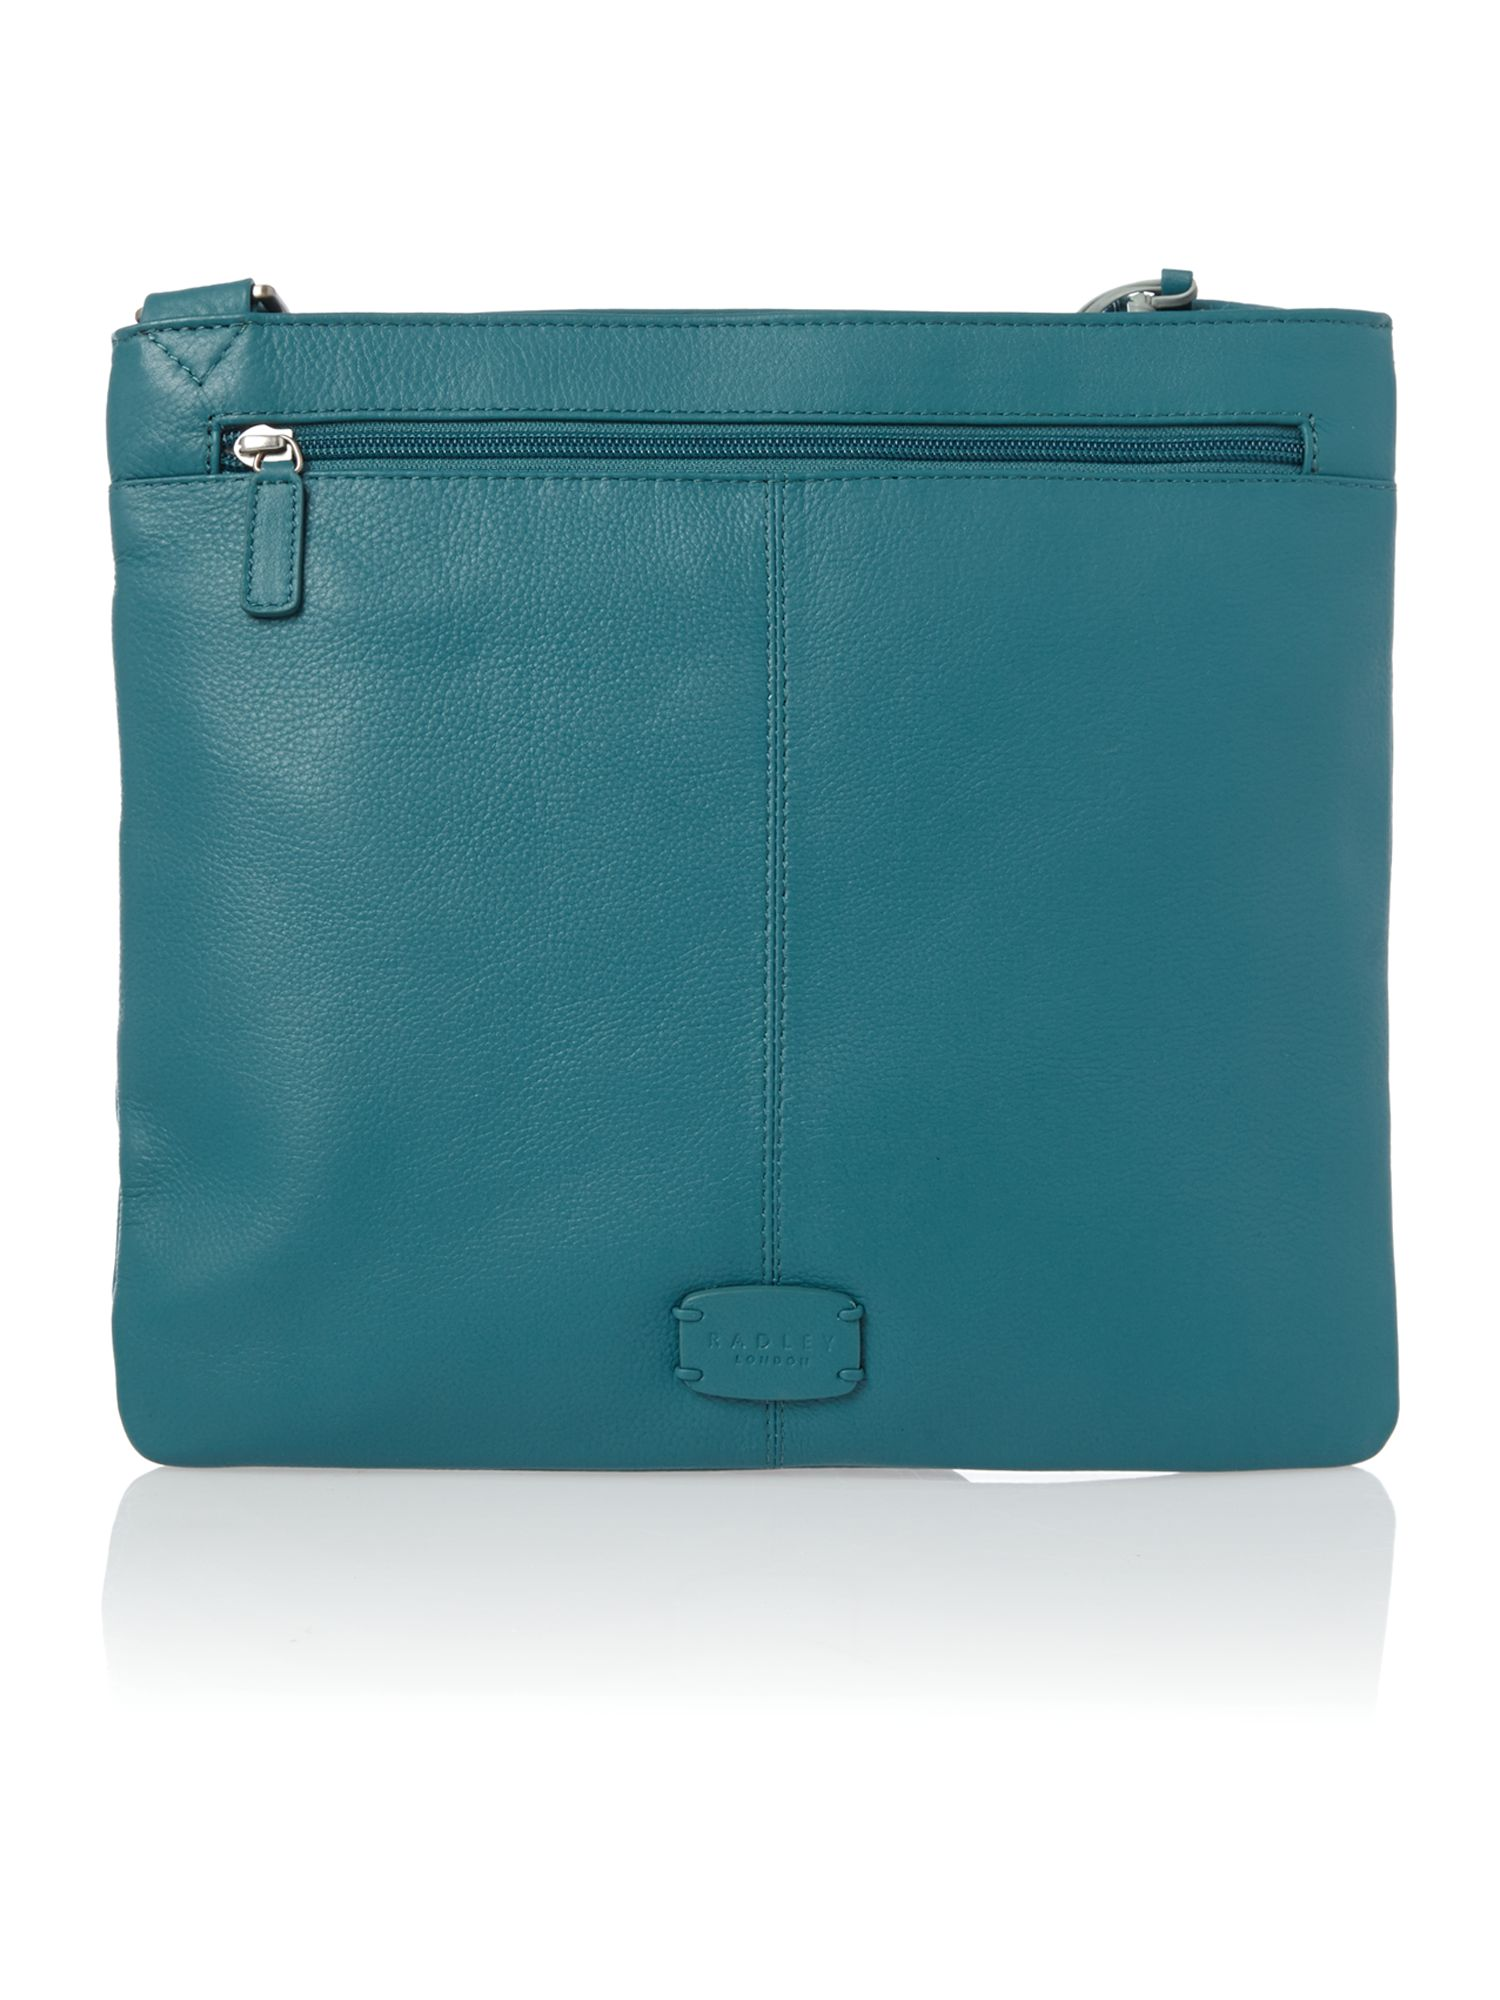 Pocket bag large ziptop xbody leather blue bag